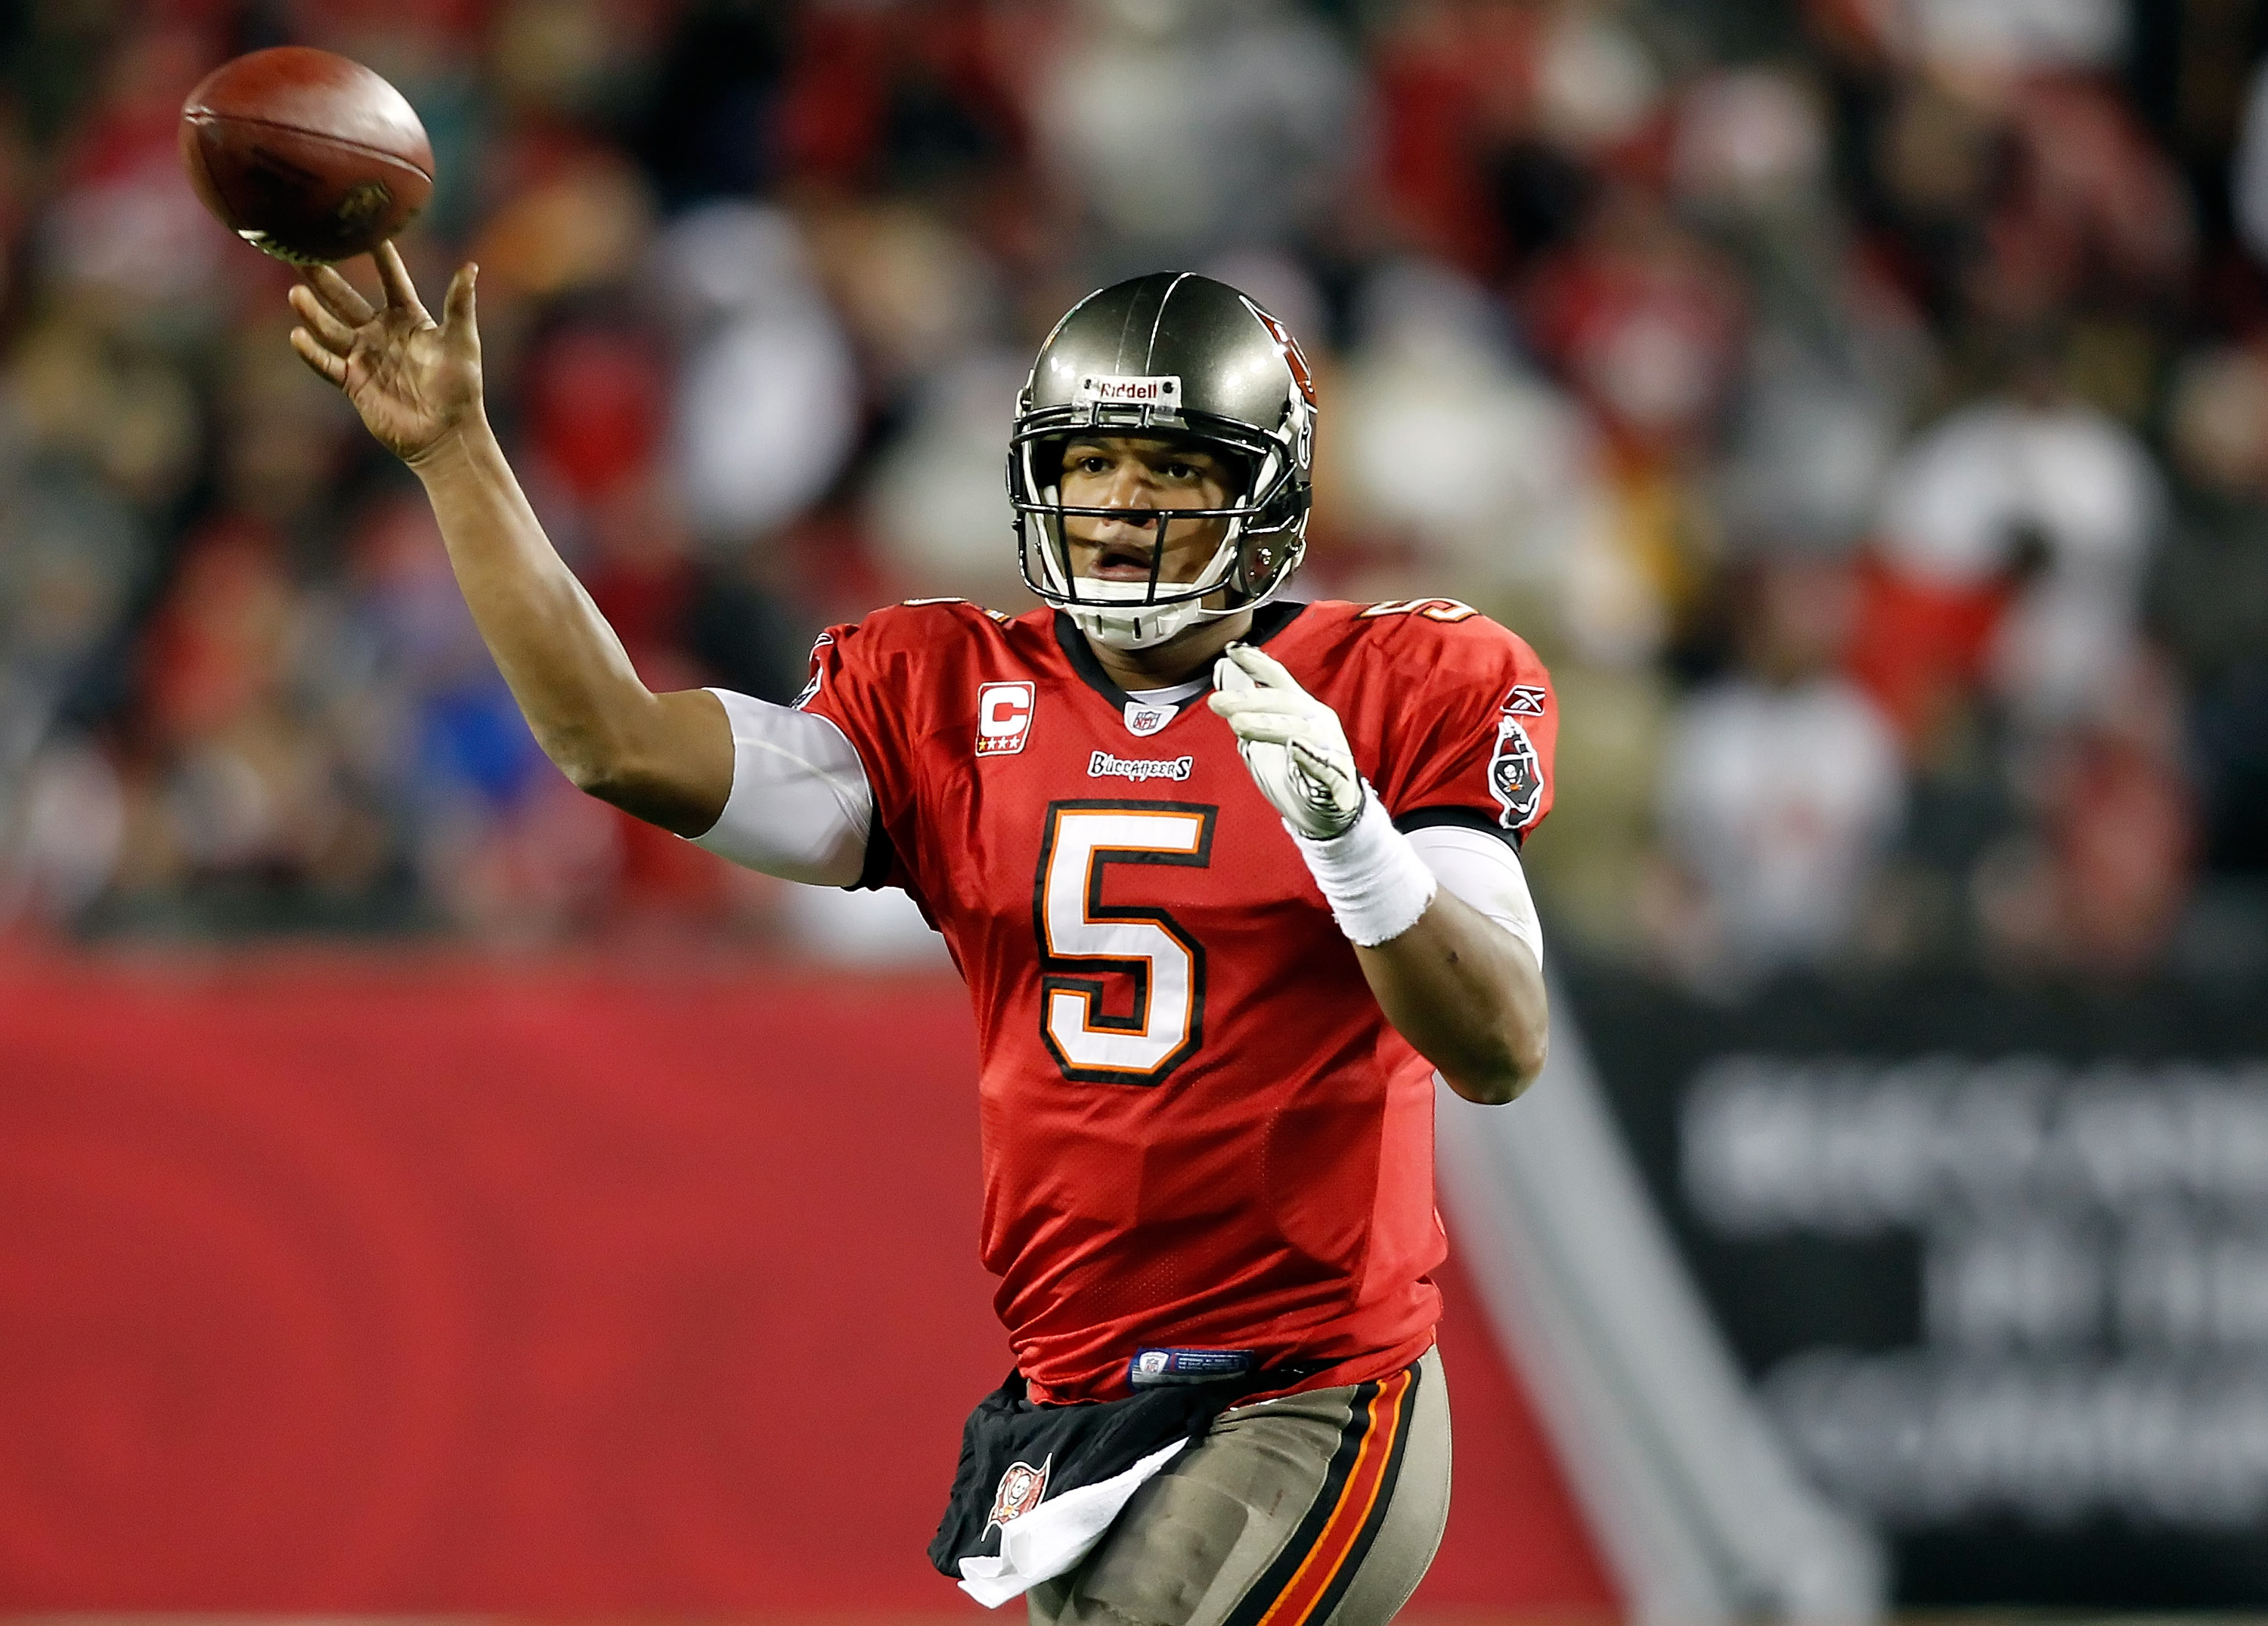 TAMPA, FL - DECEMBER 26:  Quarterback Josh Freeman #5 of the Tampa Bay Buccaneers throws a pass against the Seattle Seahawks during the game at Raymond James Stadium on December 26, 2010 in Tampa, Florida.  (Photo by J. Meric/Getty Images)